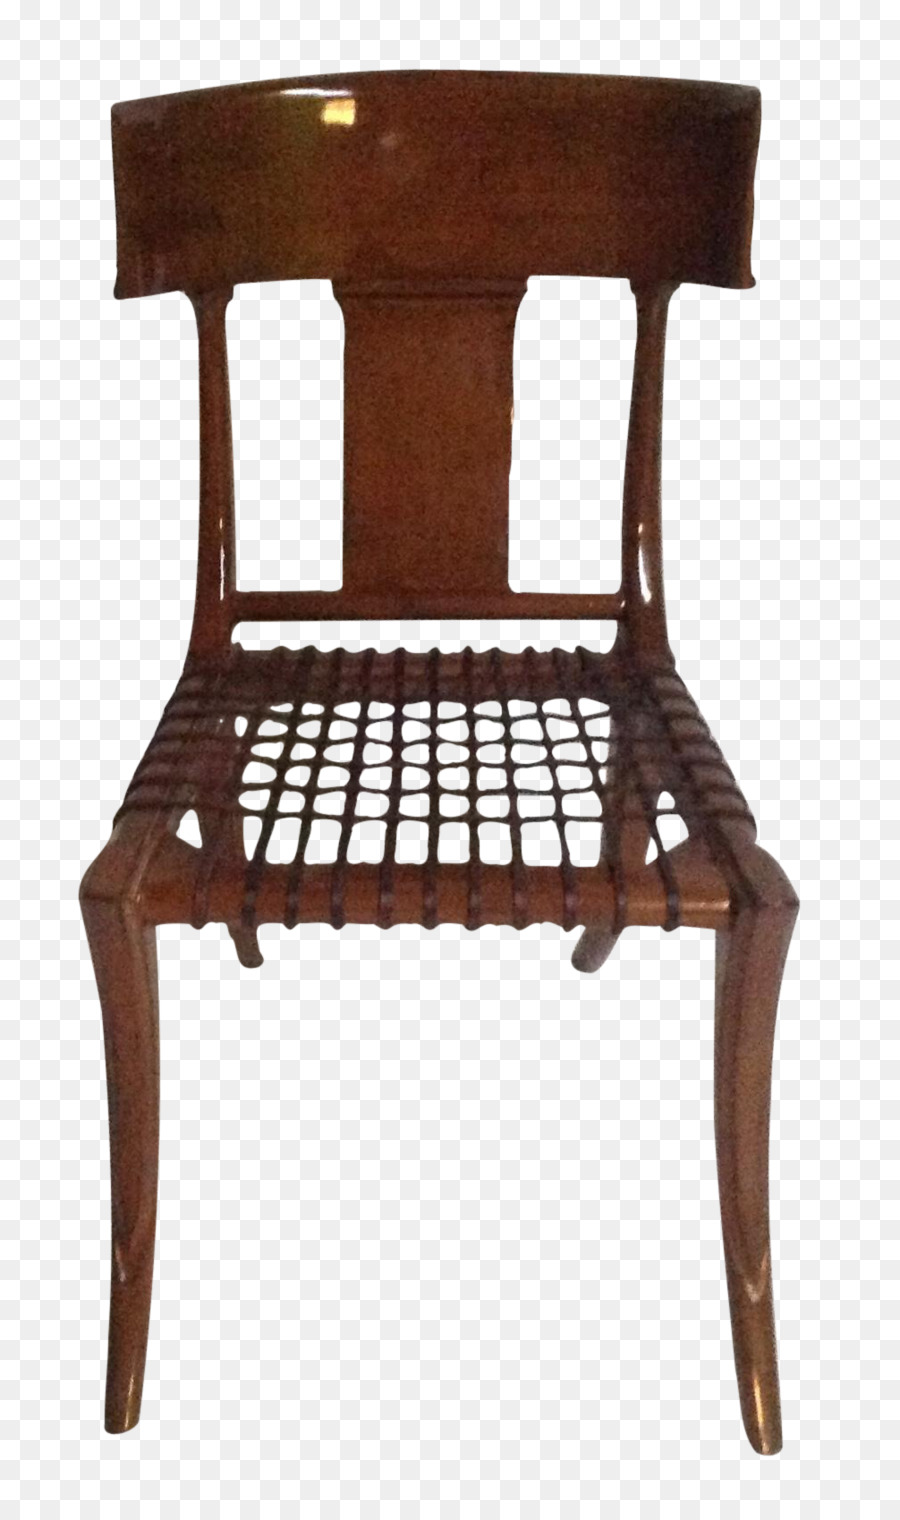 Superb Table Chair Antique Bar Stool Download 1006 1698 Download Free Architecture Designs Rallybritishbridgeorg